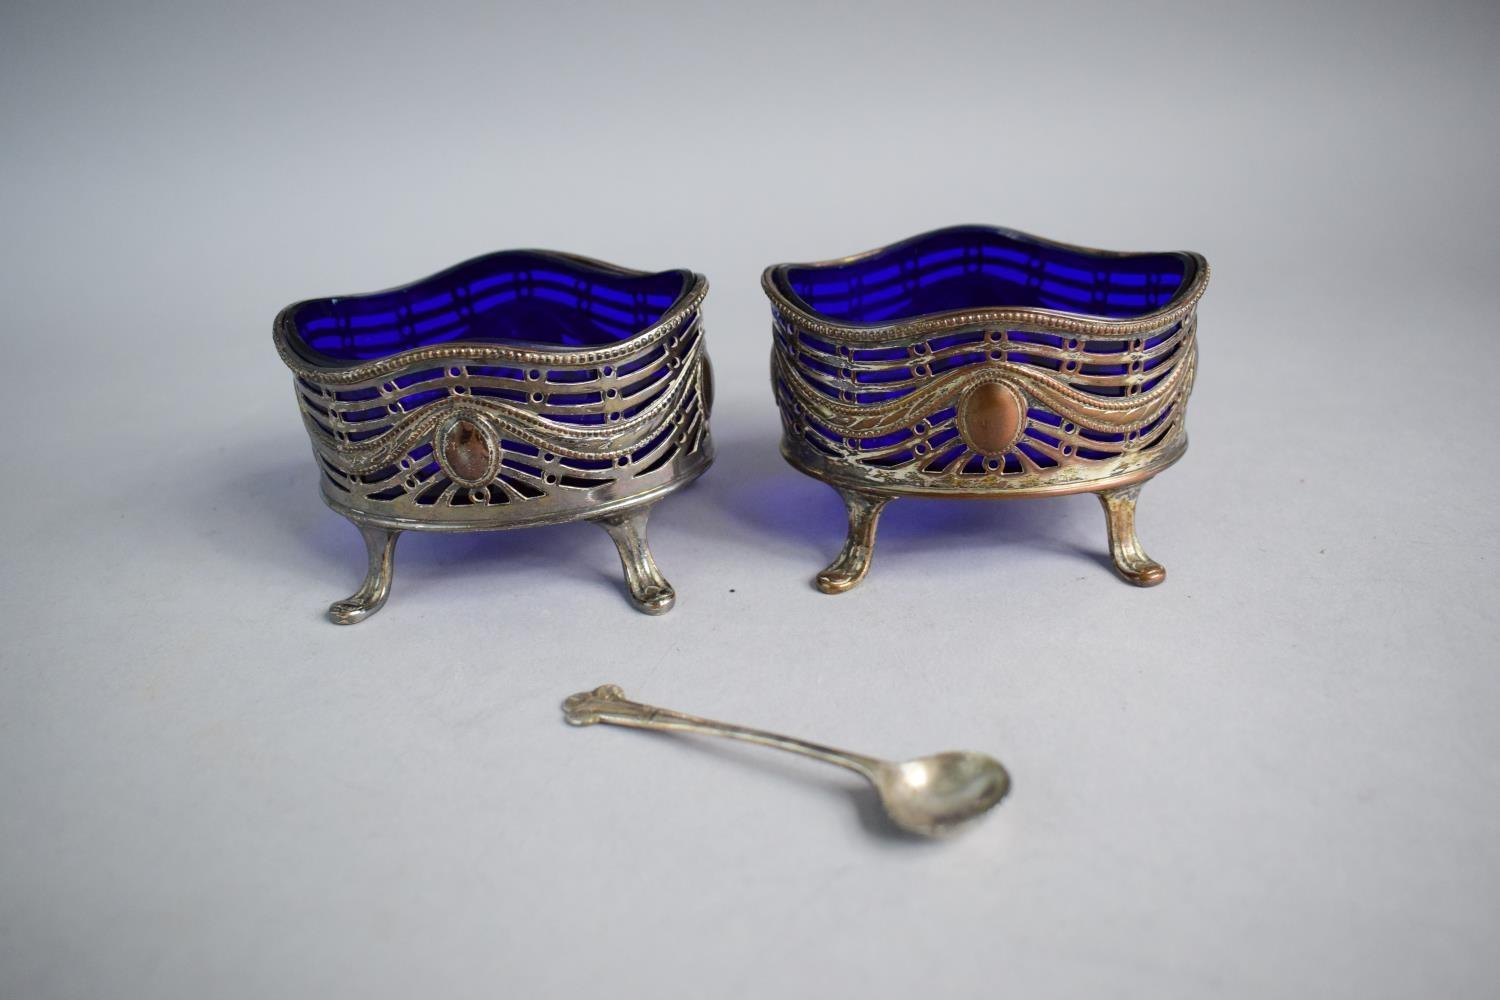 Lot 99 - A Set of Six Gilt Brass Teaspoons Together with Two Pierced Salts with Cobalt Blue Glass Liners